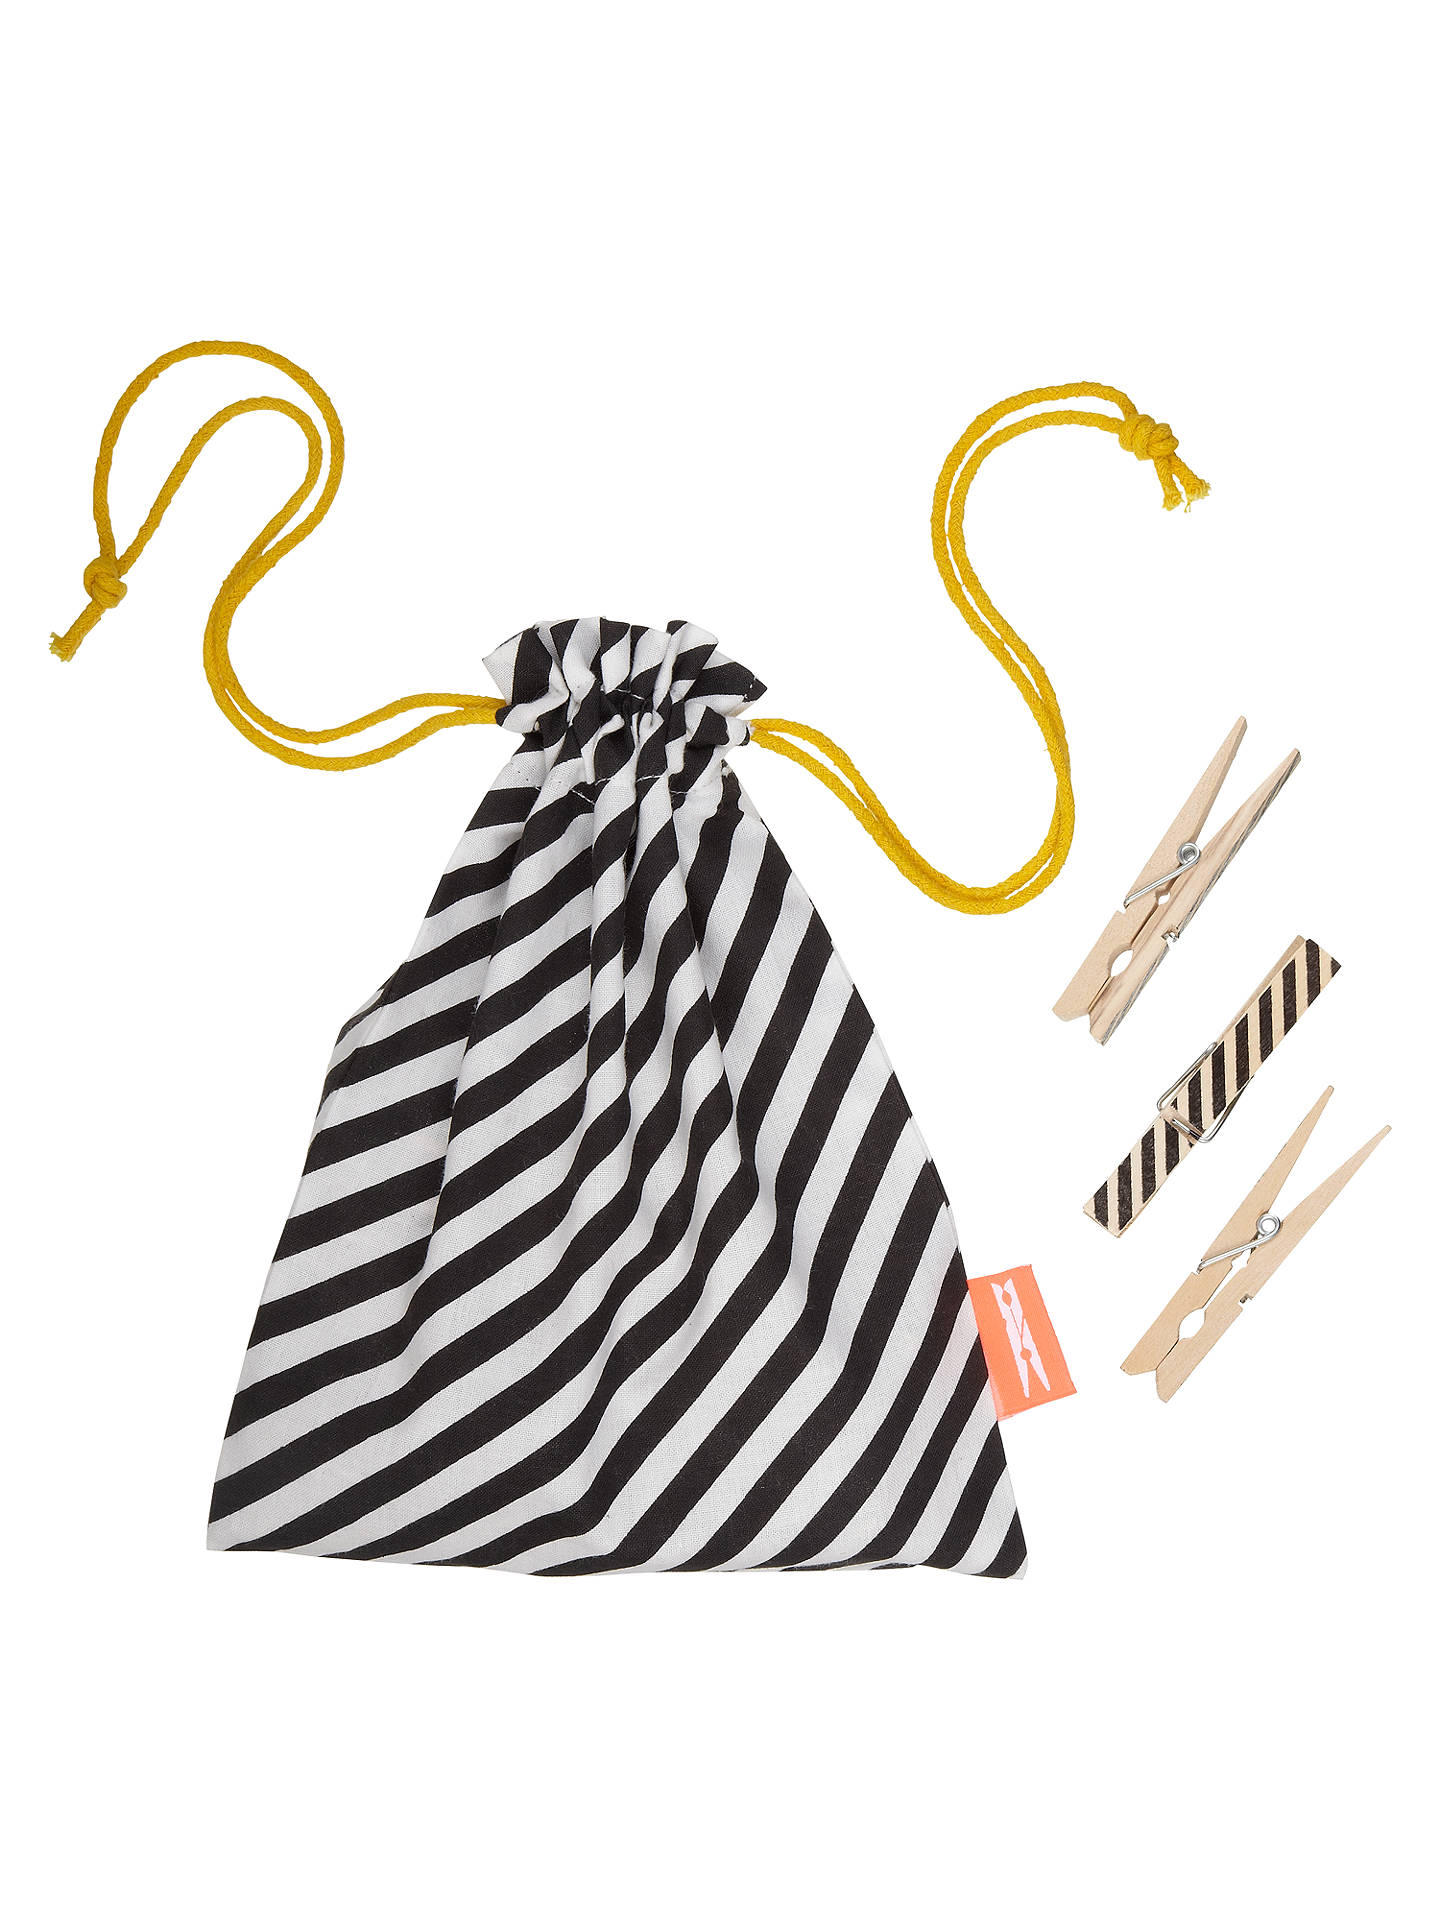 Buyferm LIVING Peg Bag with 20 FSC Pegs, Black Stripe Online at johnlewis.com